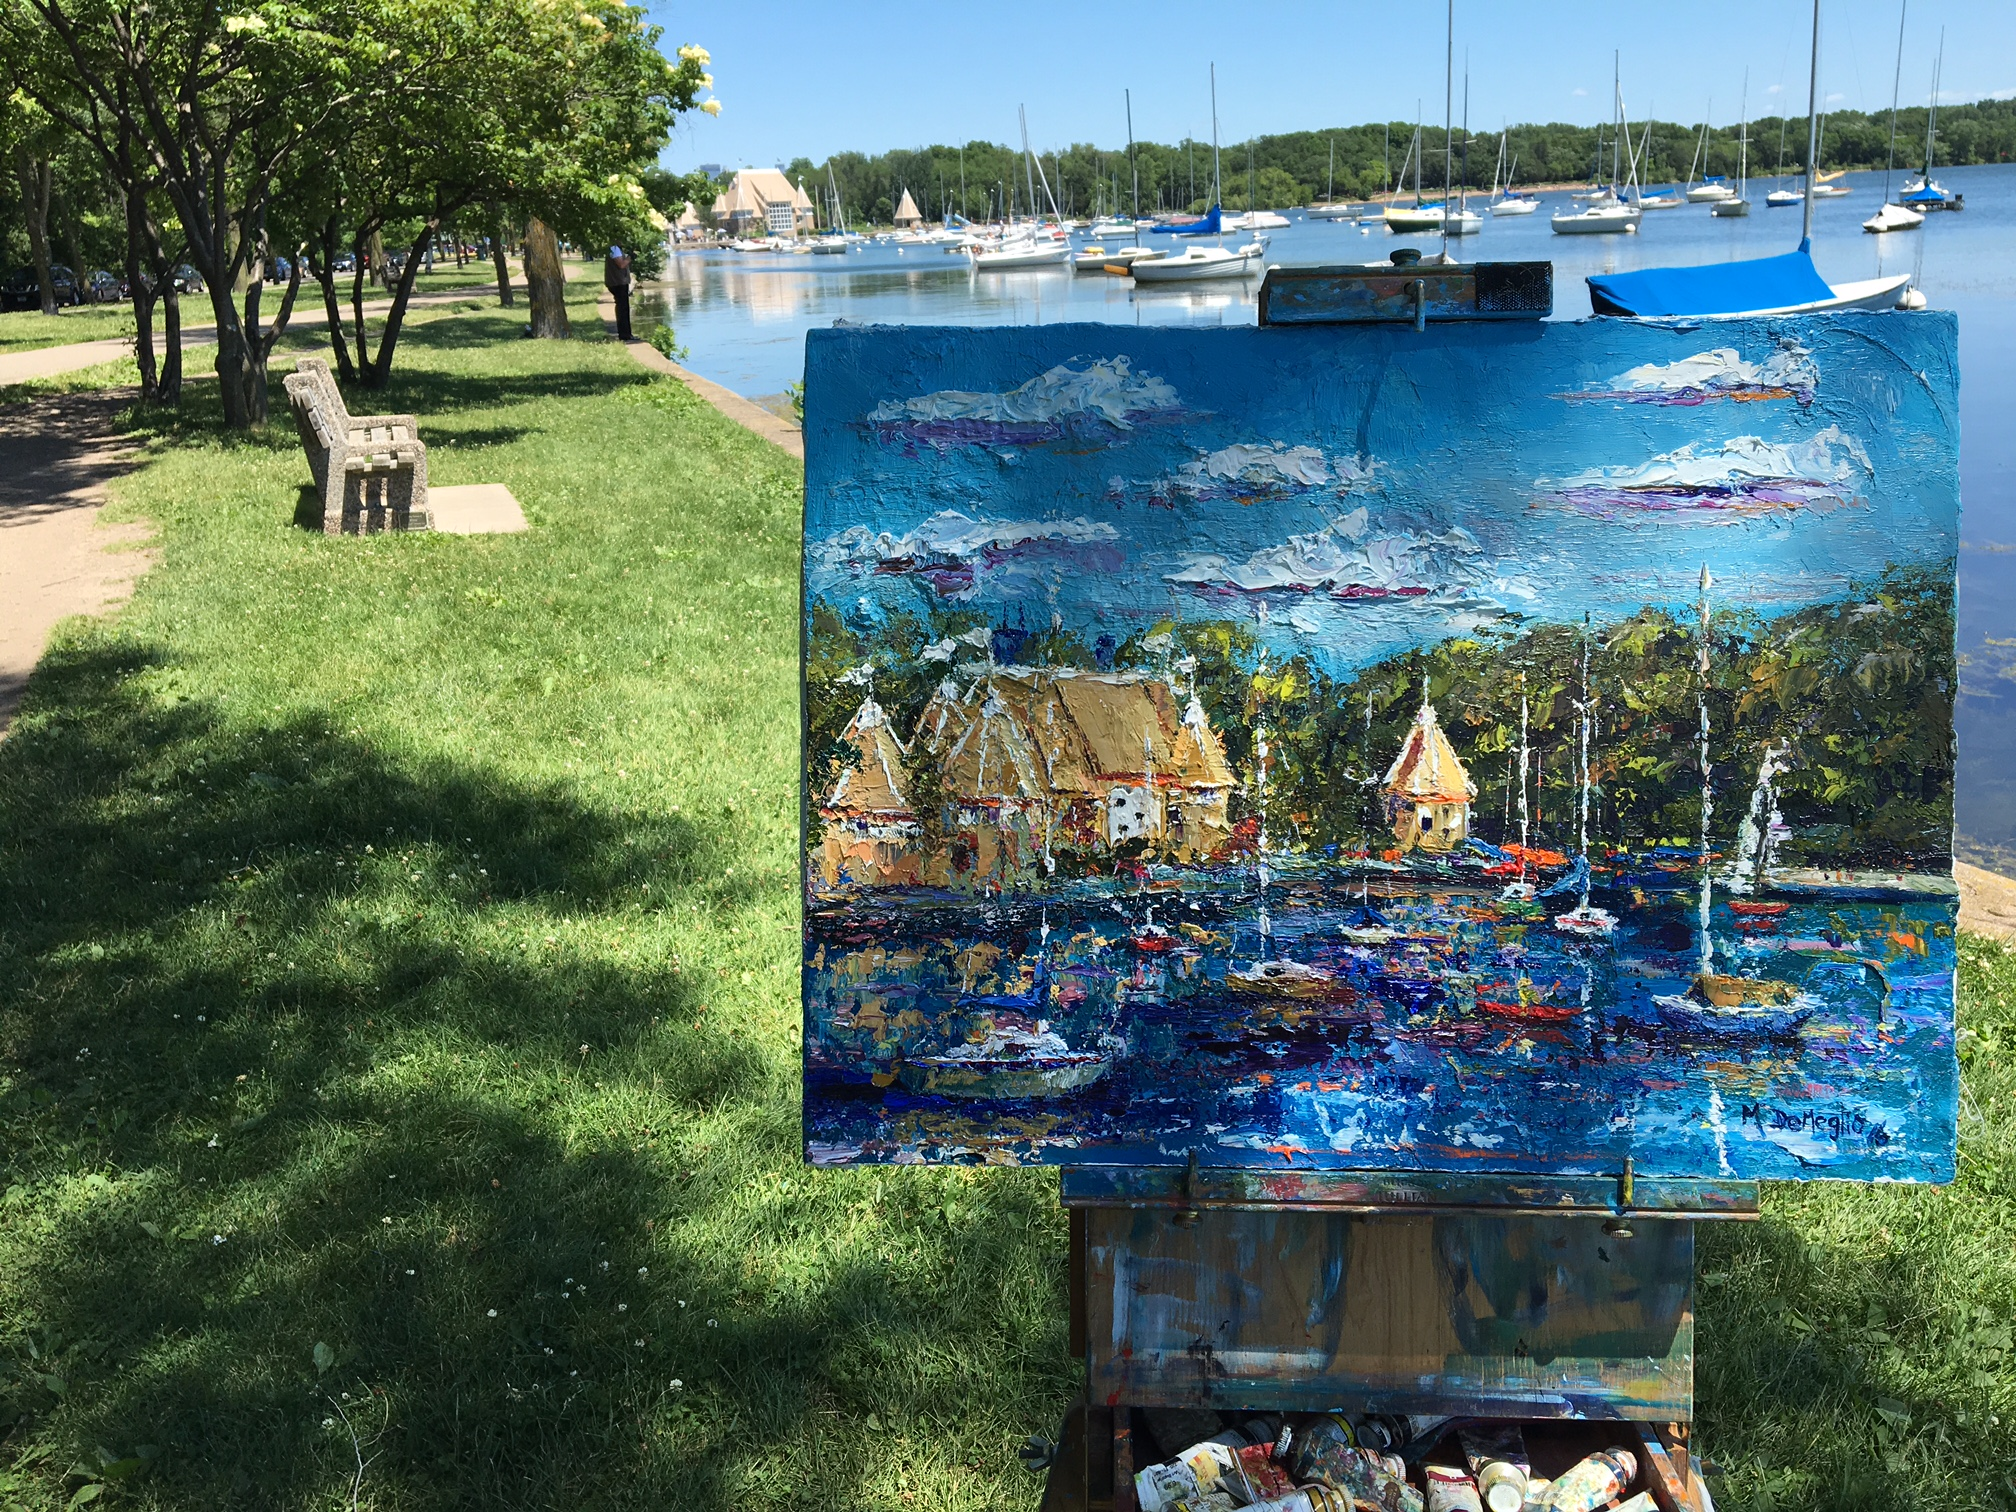 Commission of Lake harriet